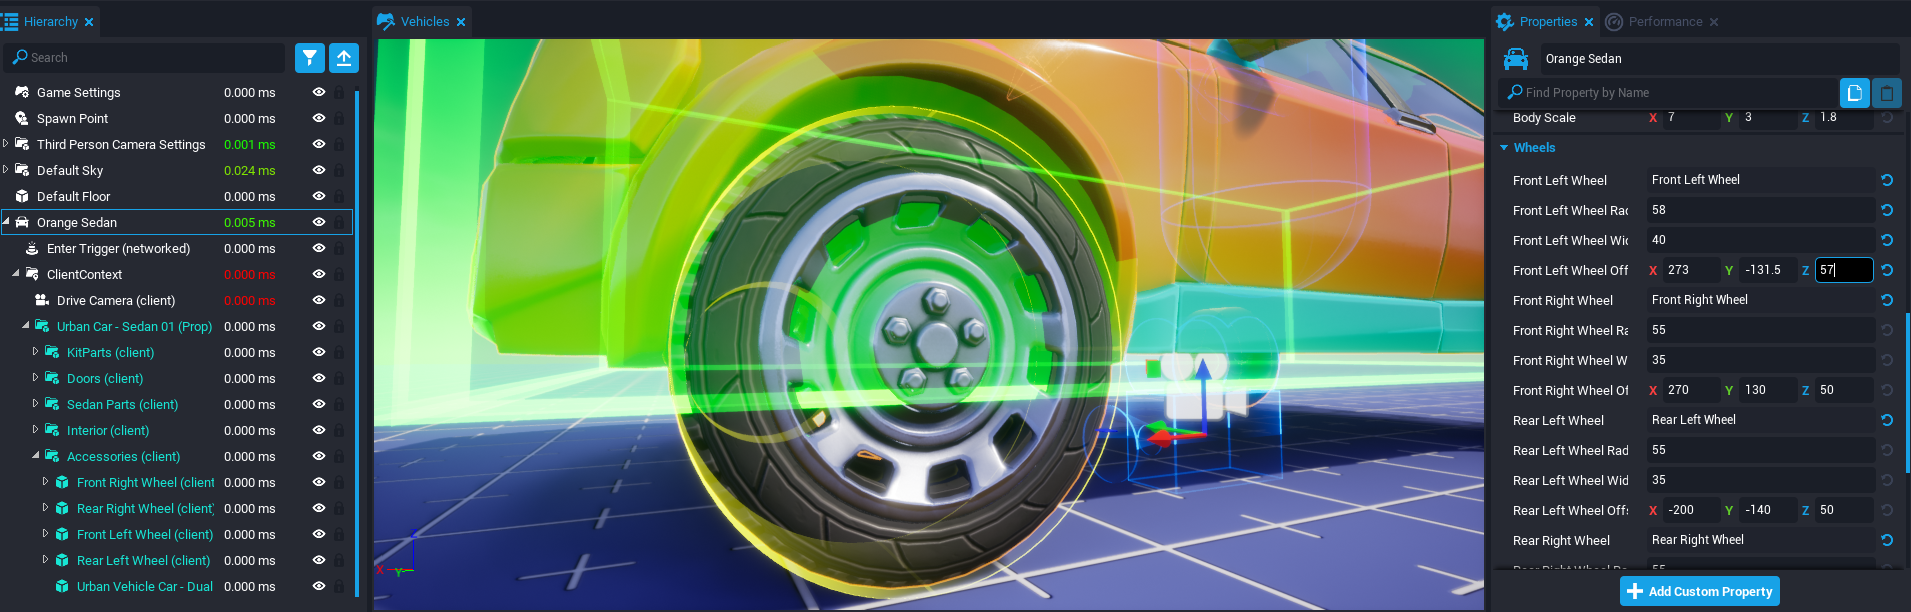 Editing Radius and Width and Offset for Each Wheel